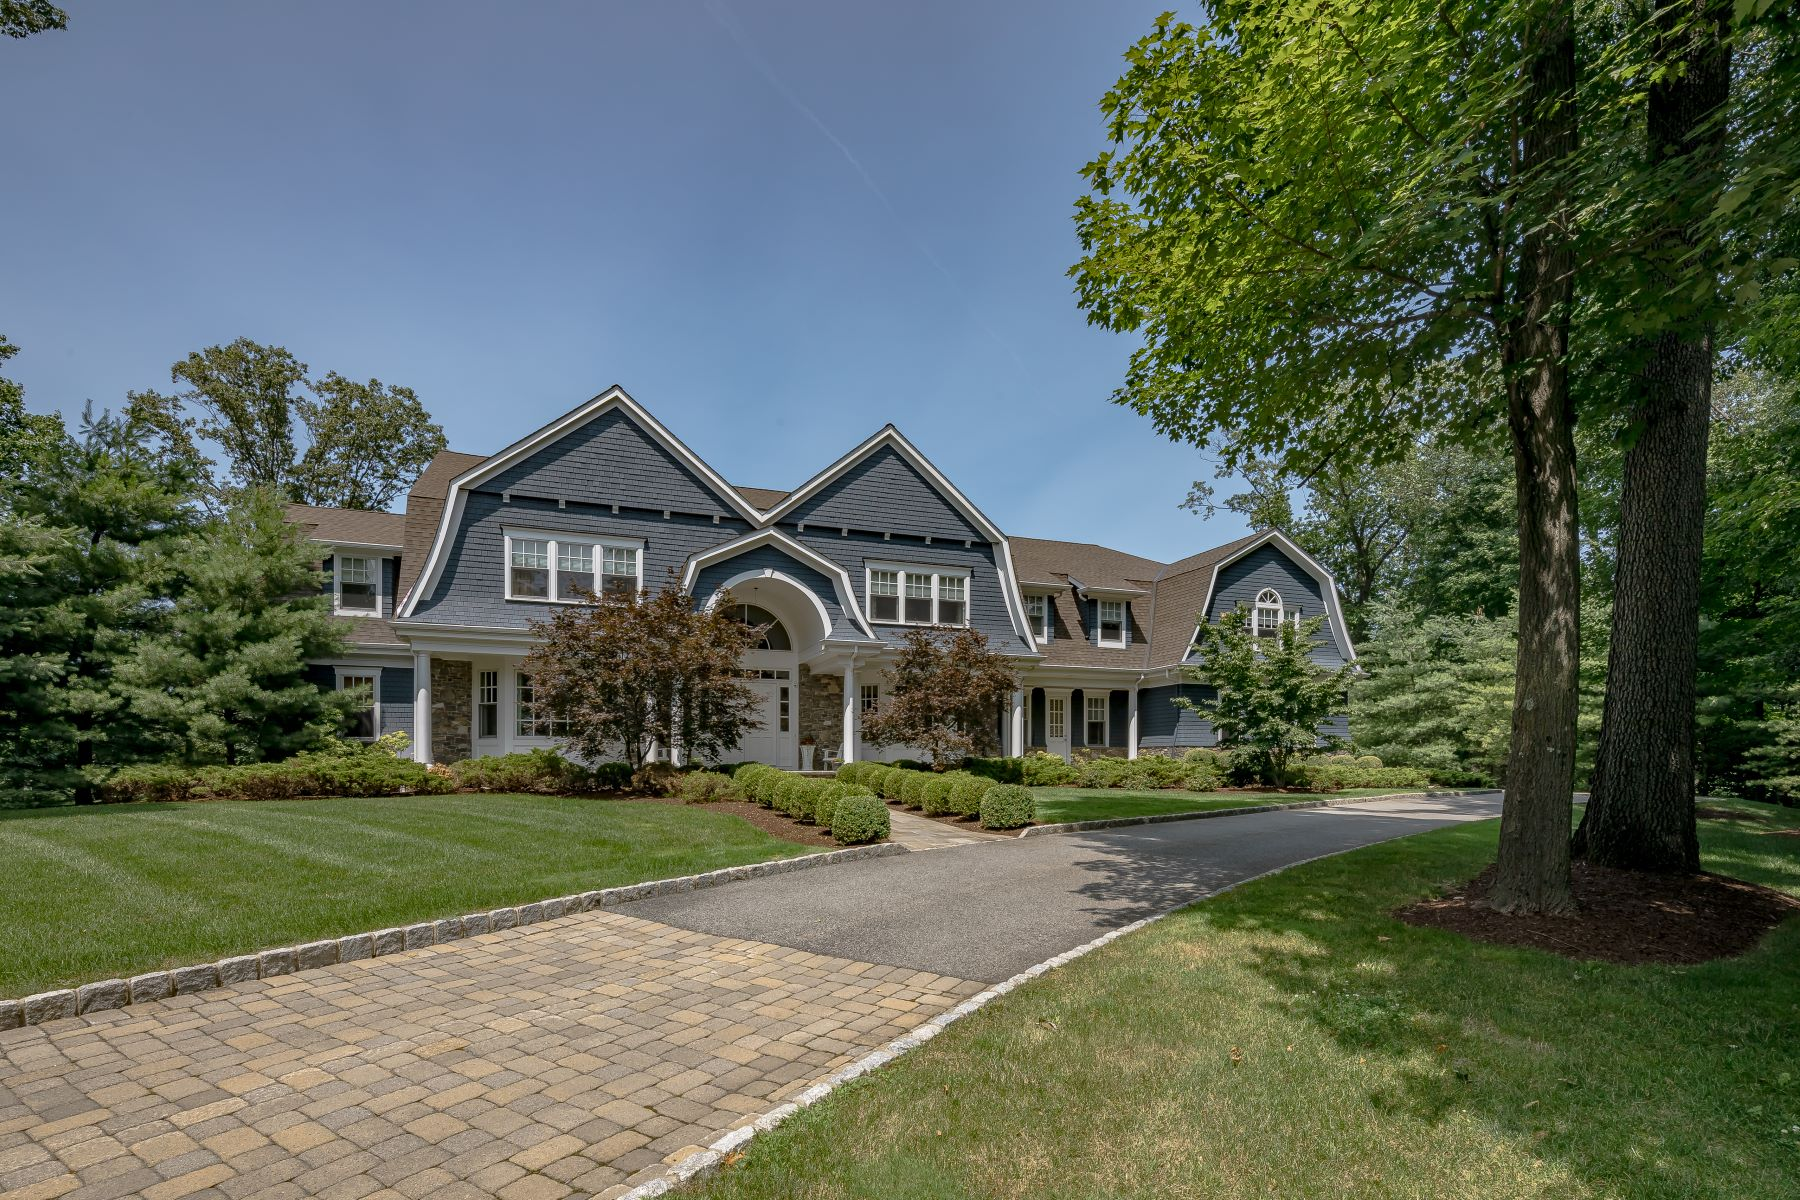 Single Family Homes for Sale at Immaculate Custom Home 79 Wisteria Way, Bernardsville, New Jersey 07924 United States